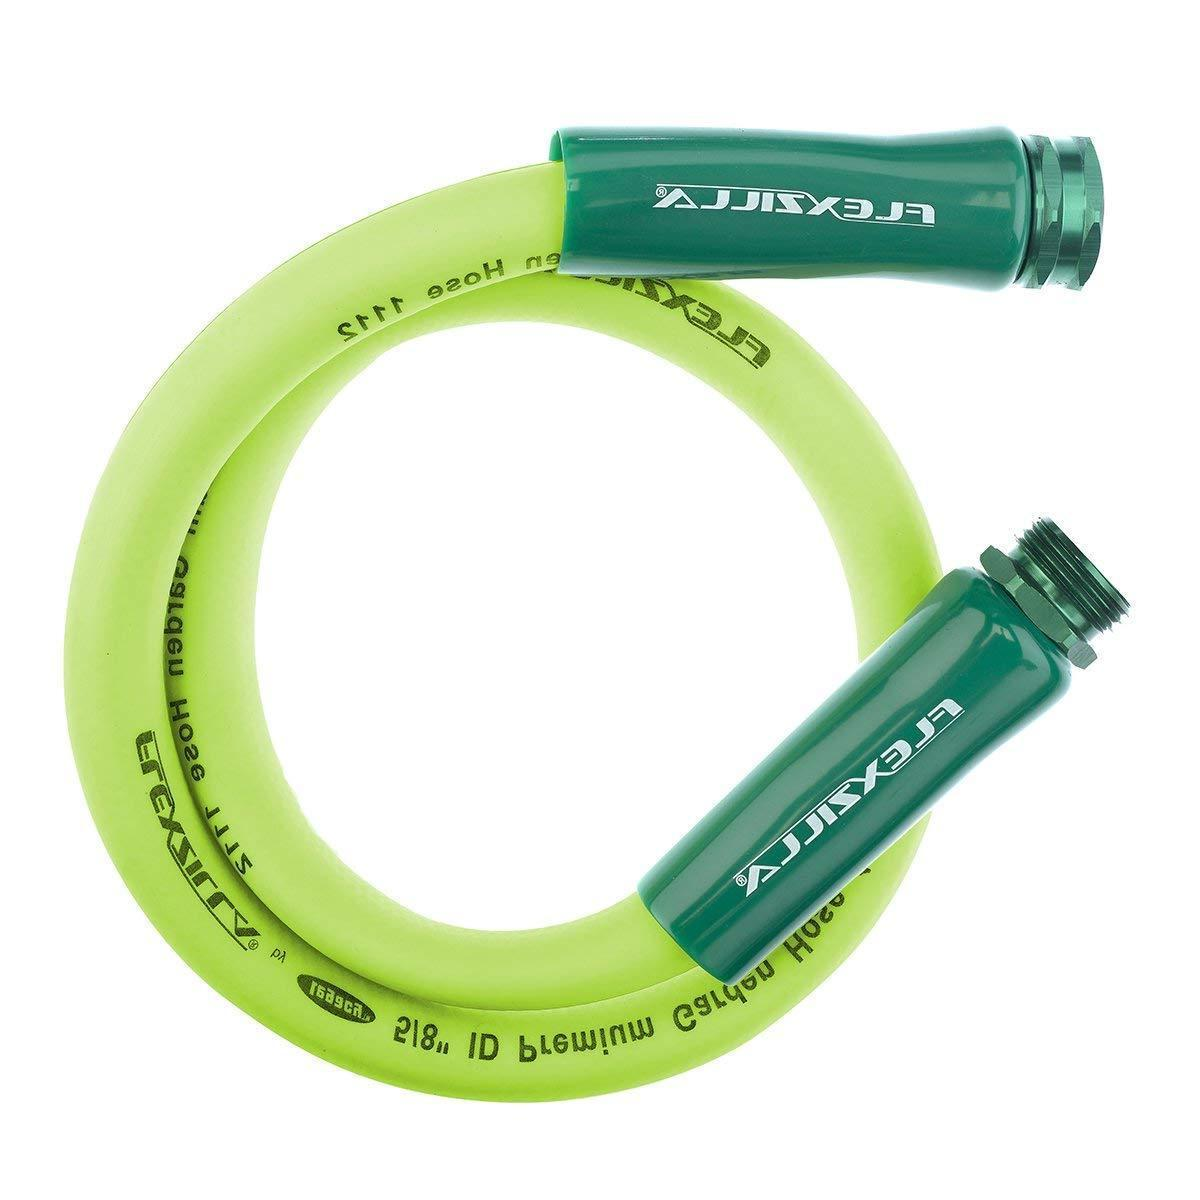 Flexzilla Garden Lead In Hose Drinking Water Safe Lightweigh